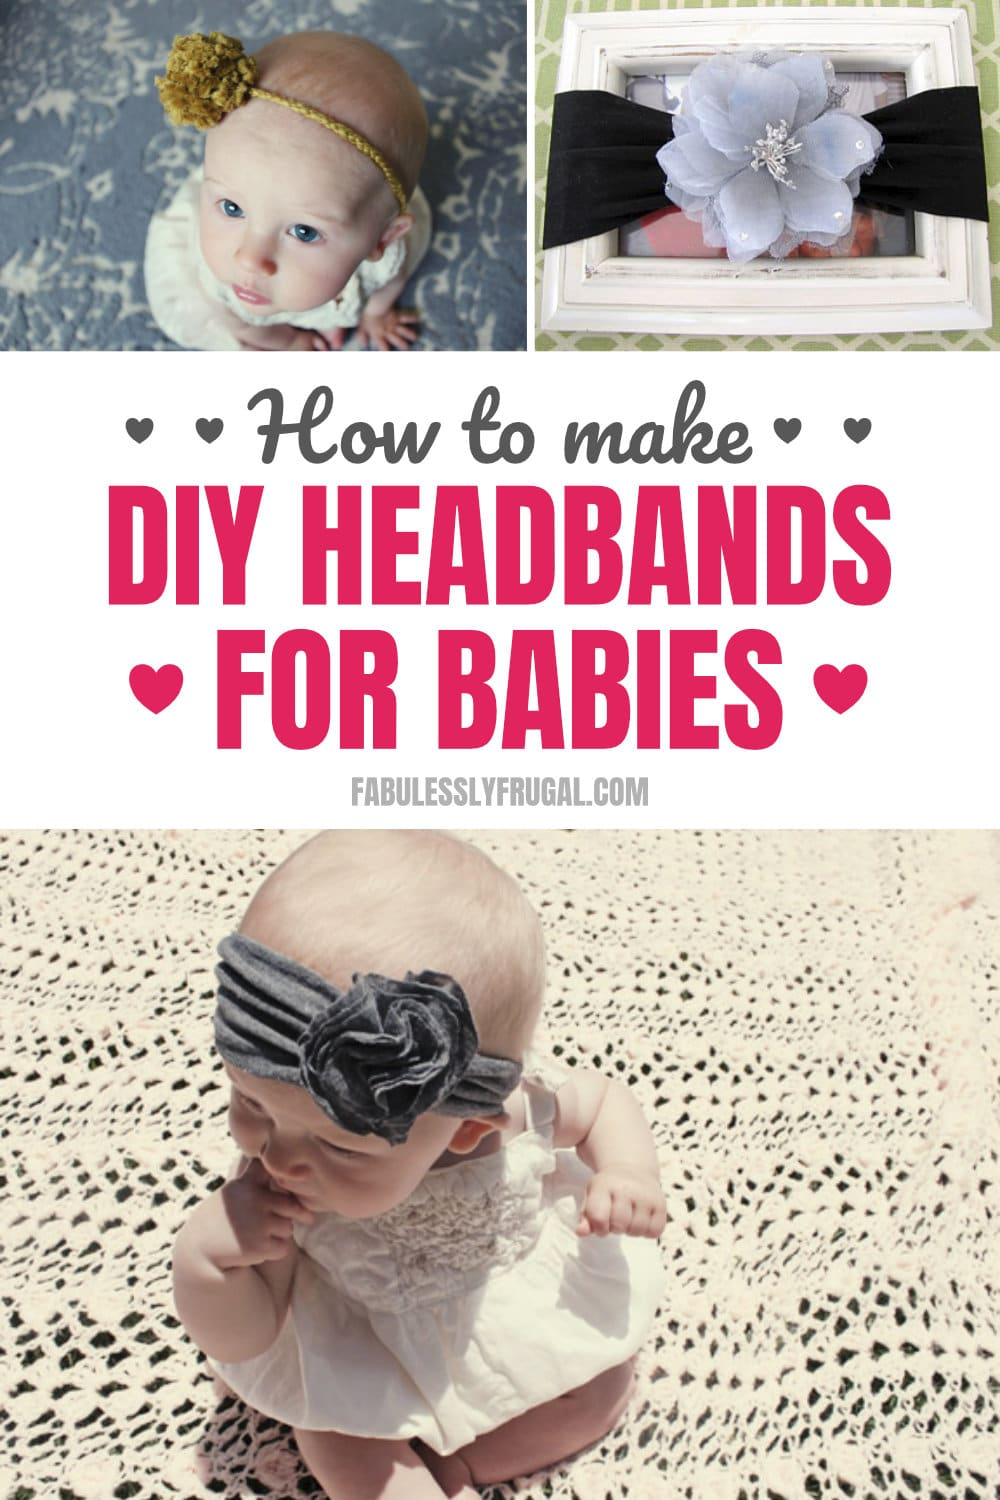 How to make headbands for babies